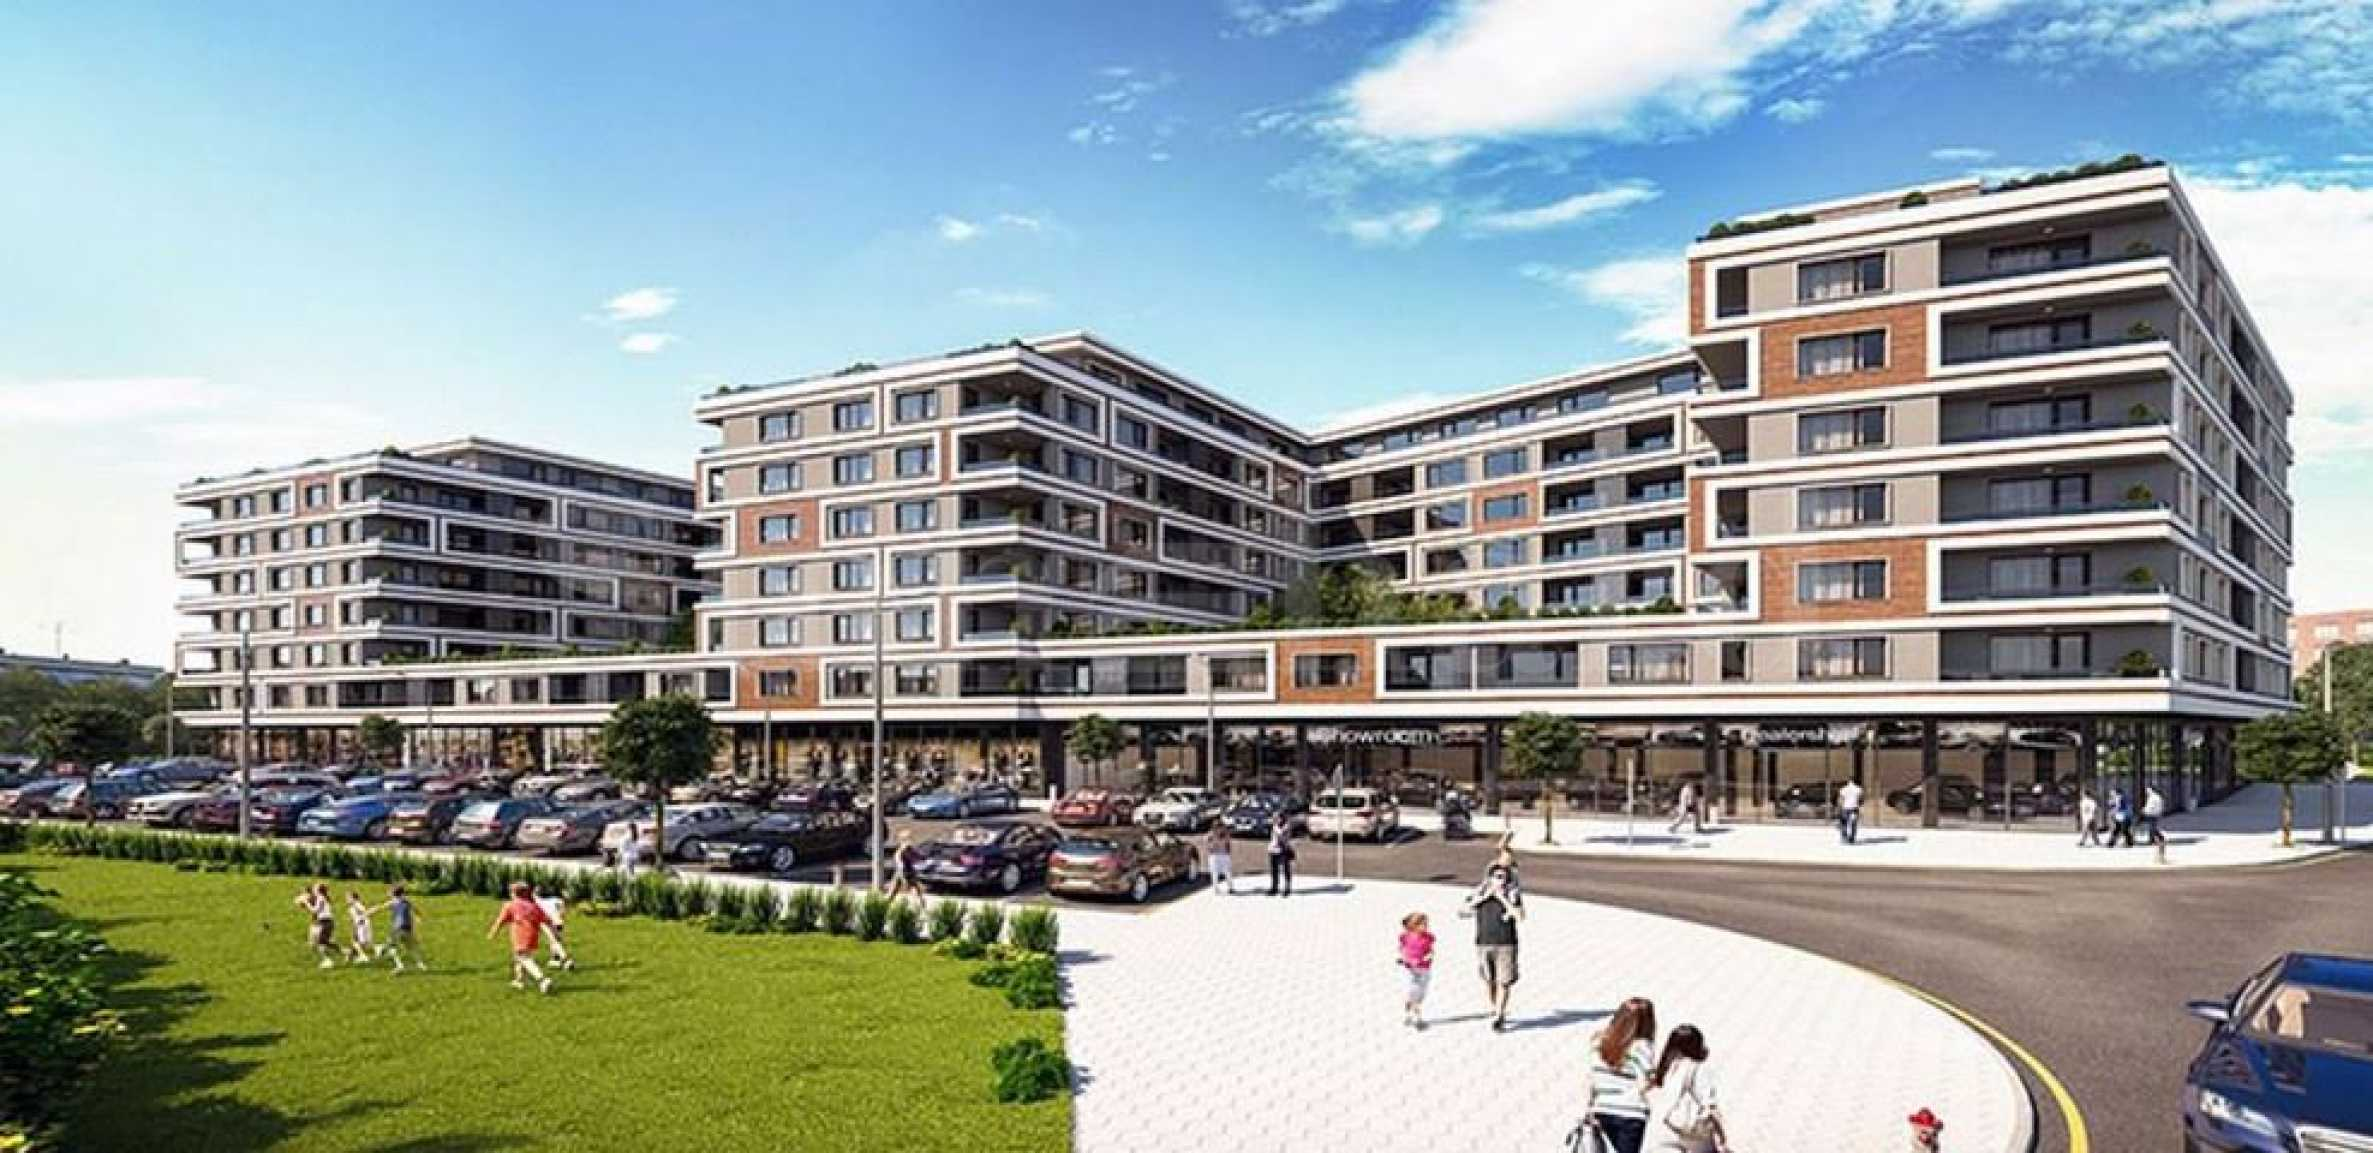 New mixed-use building in Burgas city1 - Stonehard